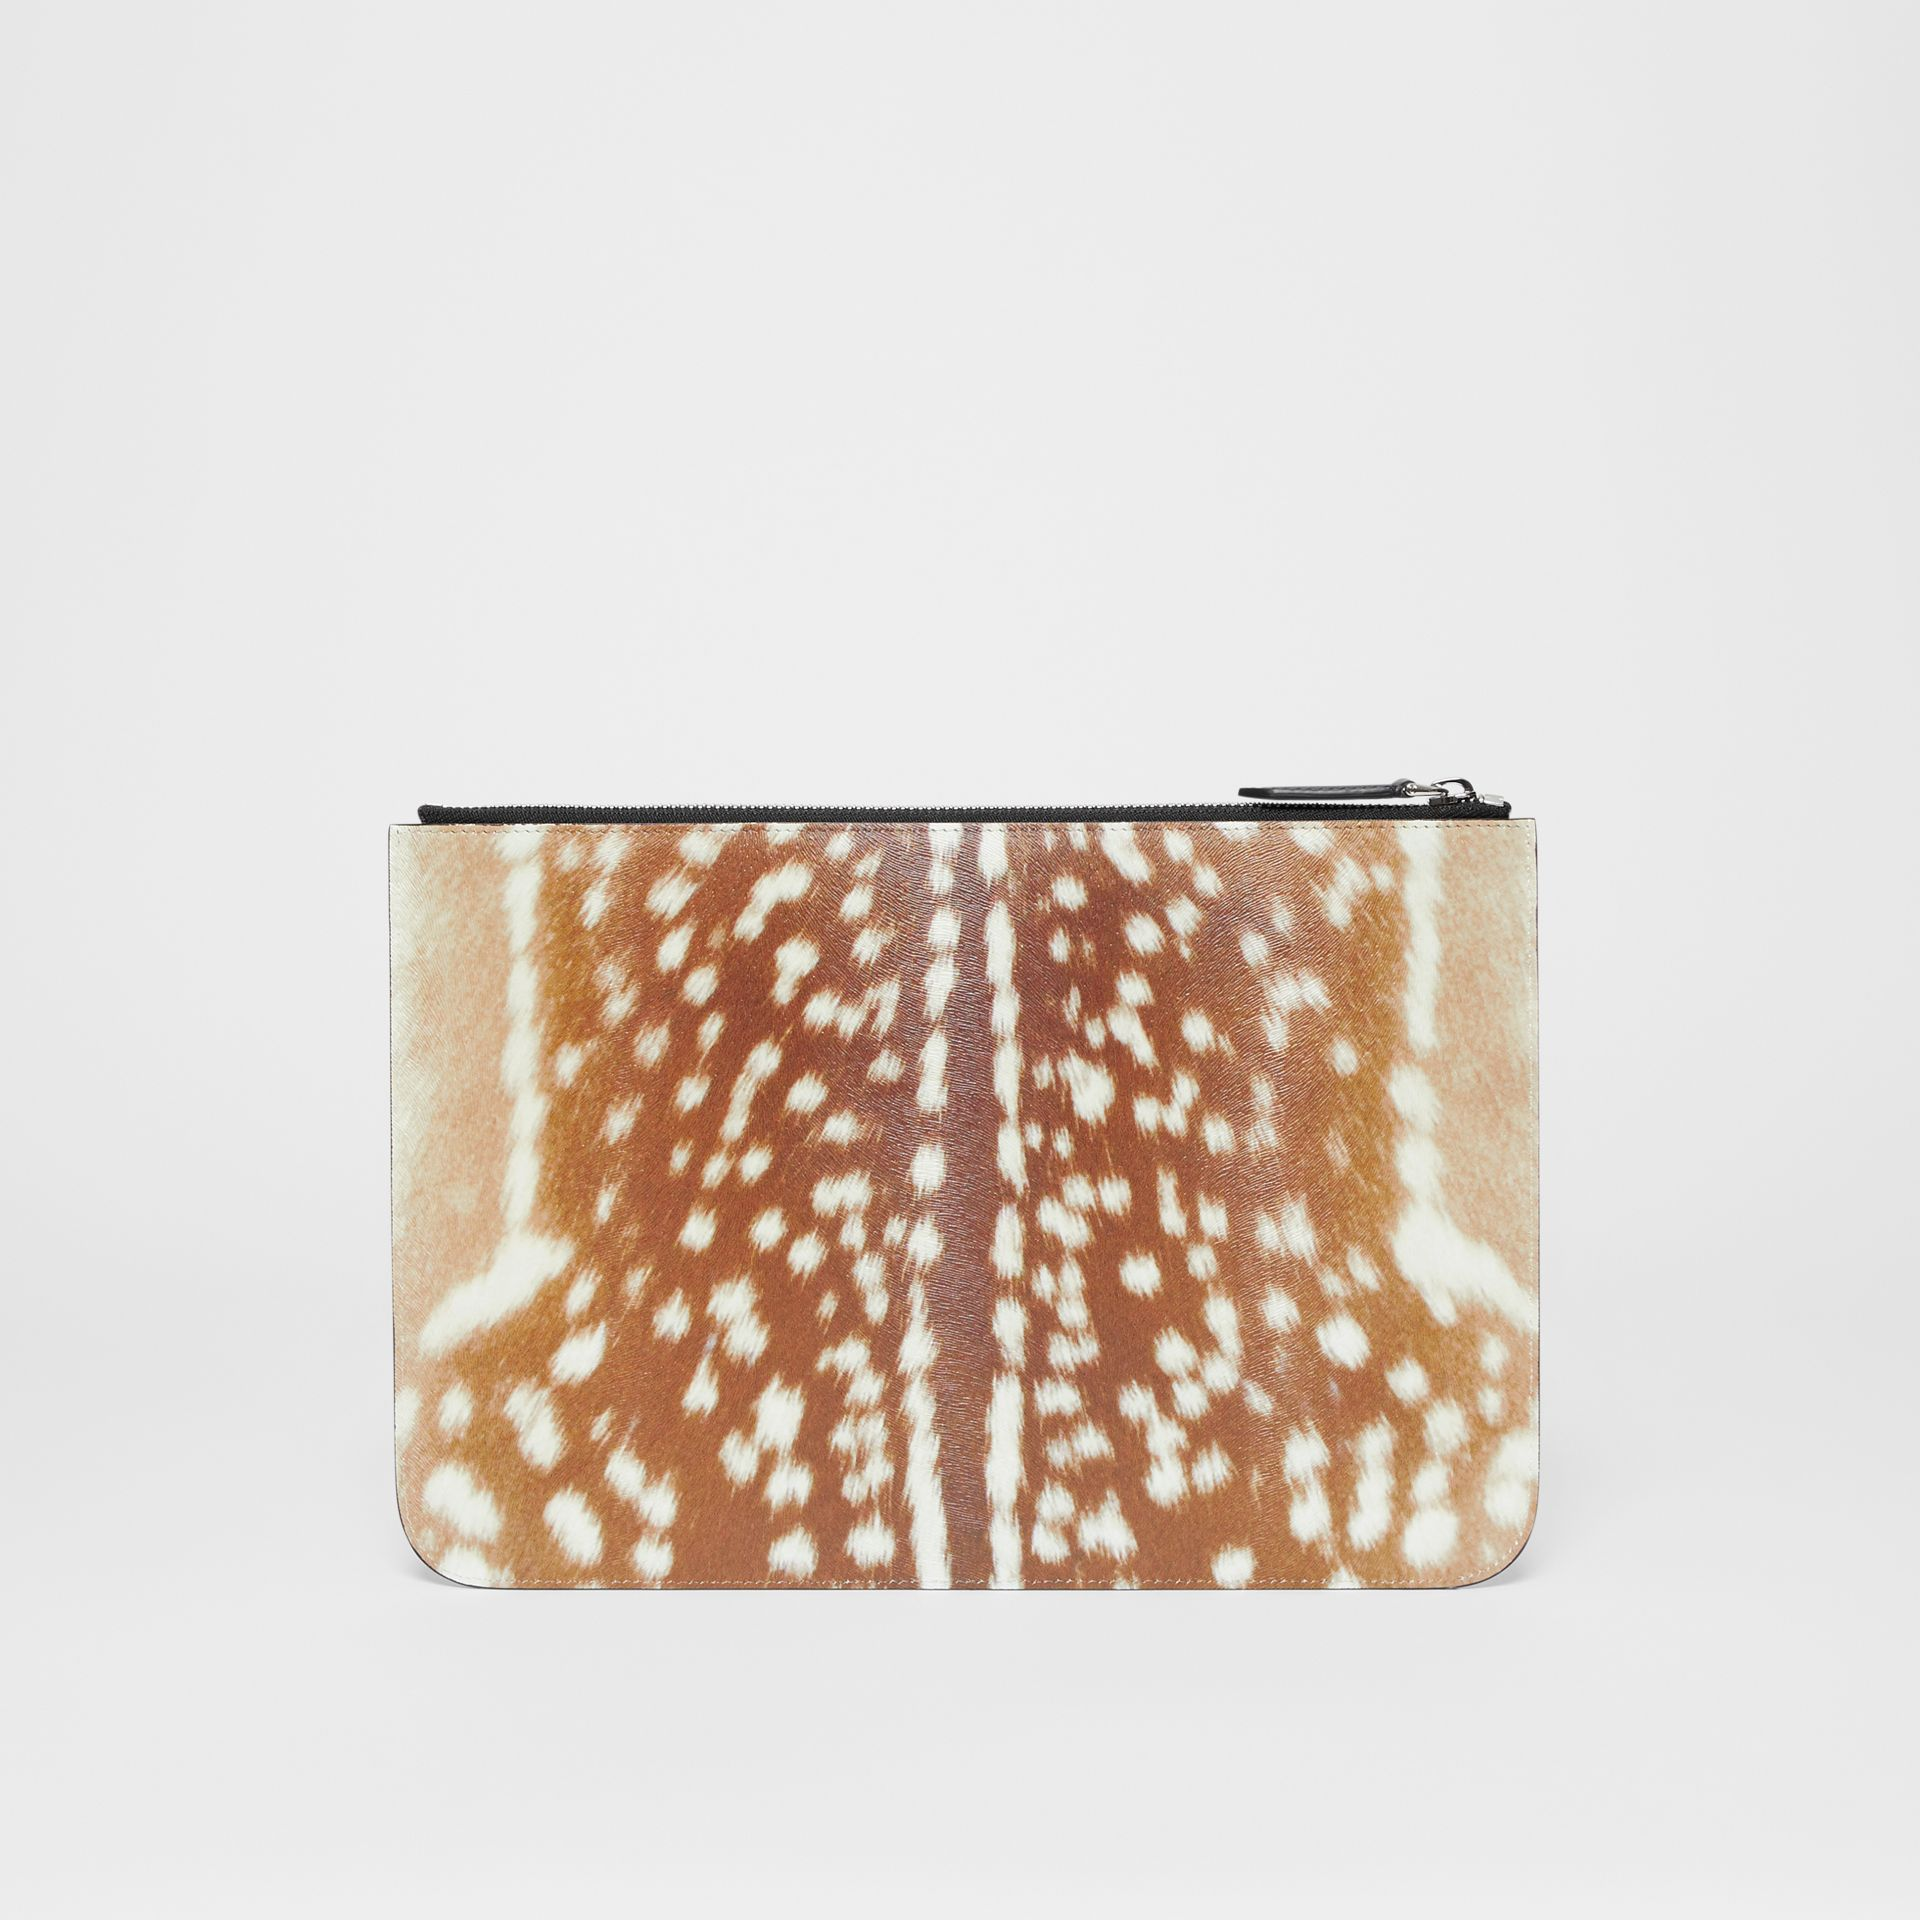 Deer Print Leather Zip Pouch in Tan | Burberry - gallery image 5